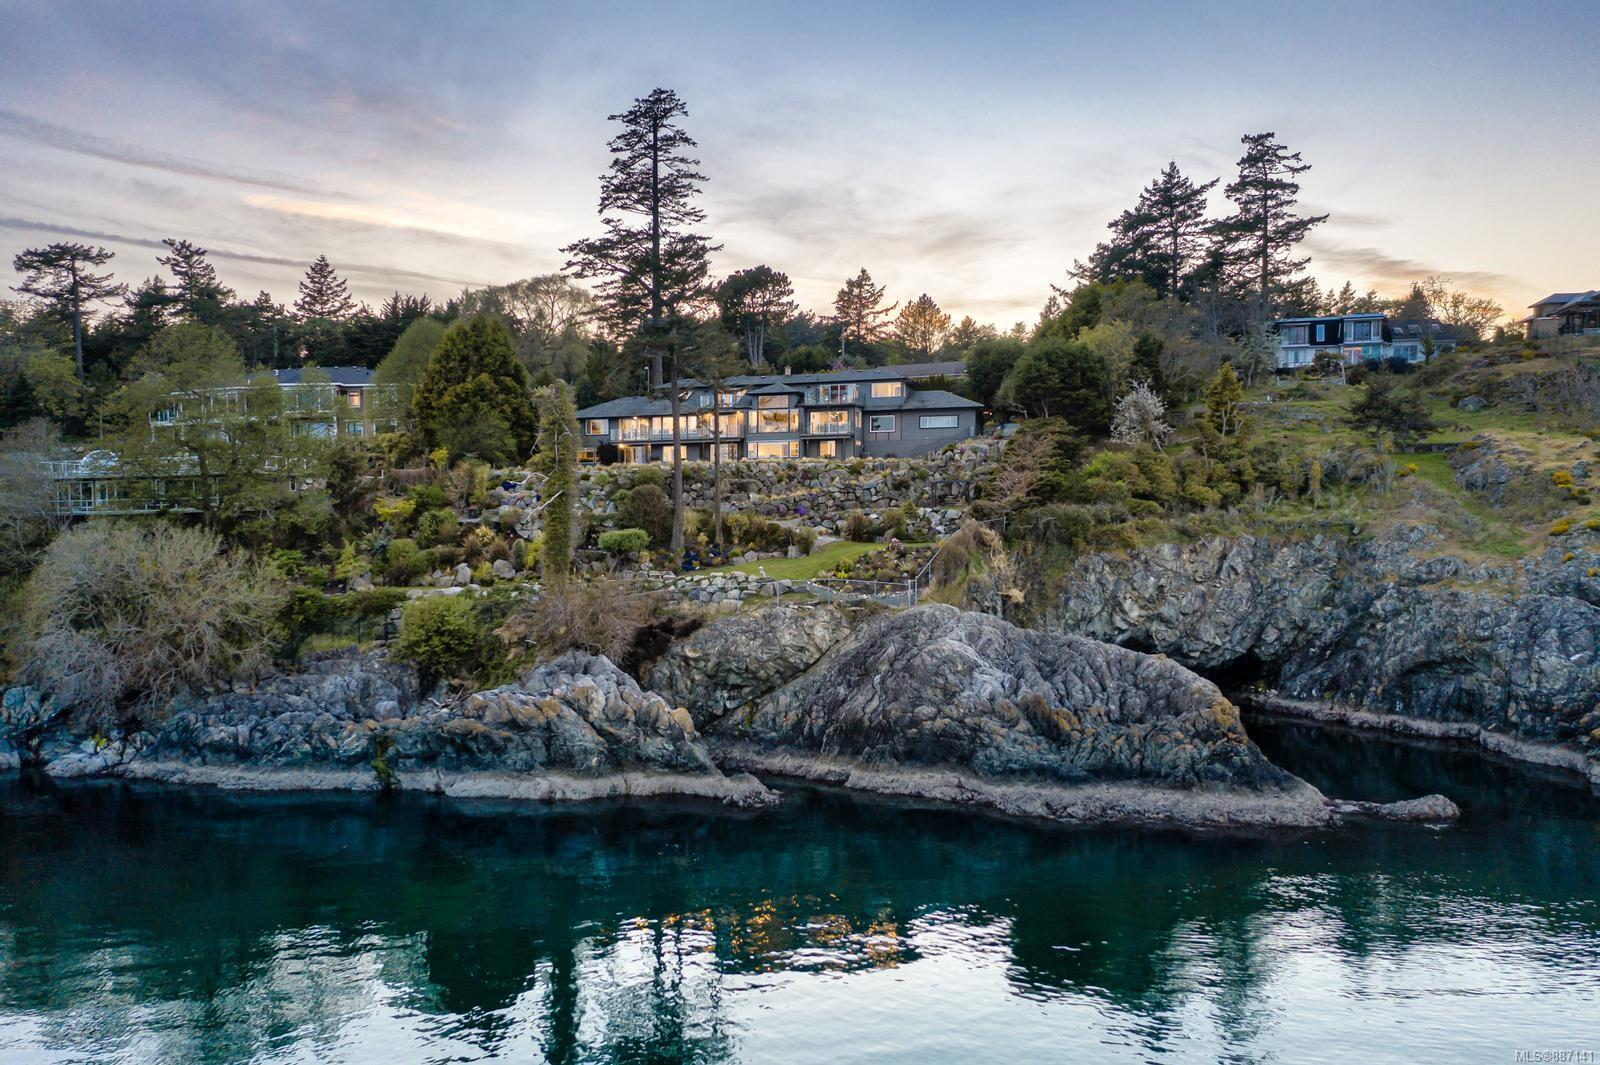 With one of the most spectacular views in all of Victoria, 4325 Gordon Head is an impressive estate, providing quintessential waterfront living. From the minute you arrive you'll be impressed by the gated entrance, cascading waterfall, manicured gardens, and total privacy. This family home affords panoramic ocean views from nearly every room and is perfect for entertaining. The spacious living and dining room offer floor to ceiling windows, a modern fireplace, and great flow to the intimate breakfast nook and family room. The decadent kitchen has quartz countertops, 2 breakfast bars, pantry, and SS appliances. Also on the main is the private nanny suite, with open concept living space, walk-in closet, and sizeable bathroom. Upstairs are 3 bedrooms including the primary suite with large closets, a deep soaker tub, and oversized shower. The lower level provides additional bedrooms (all with views), option for an office space with separate entrance, as well as an indoor hot tub and sauna.